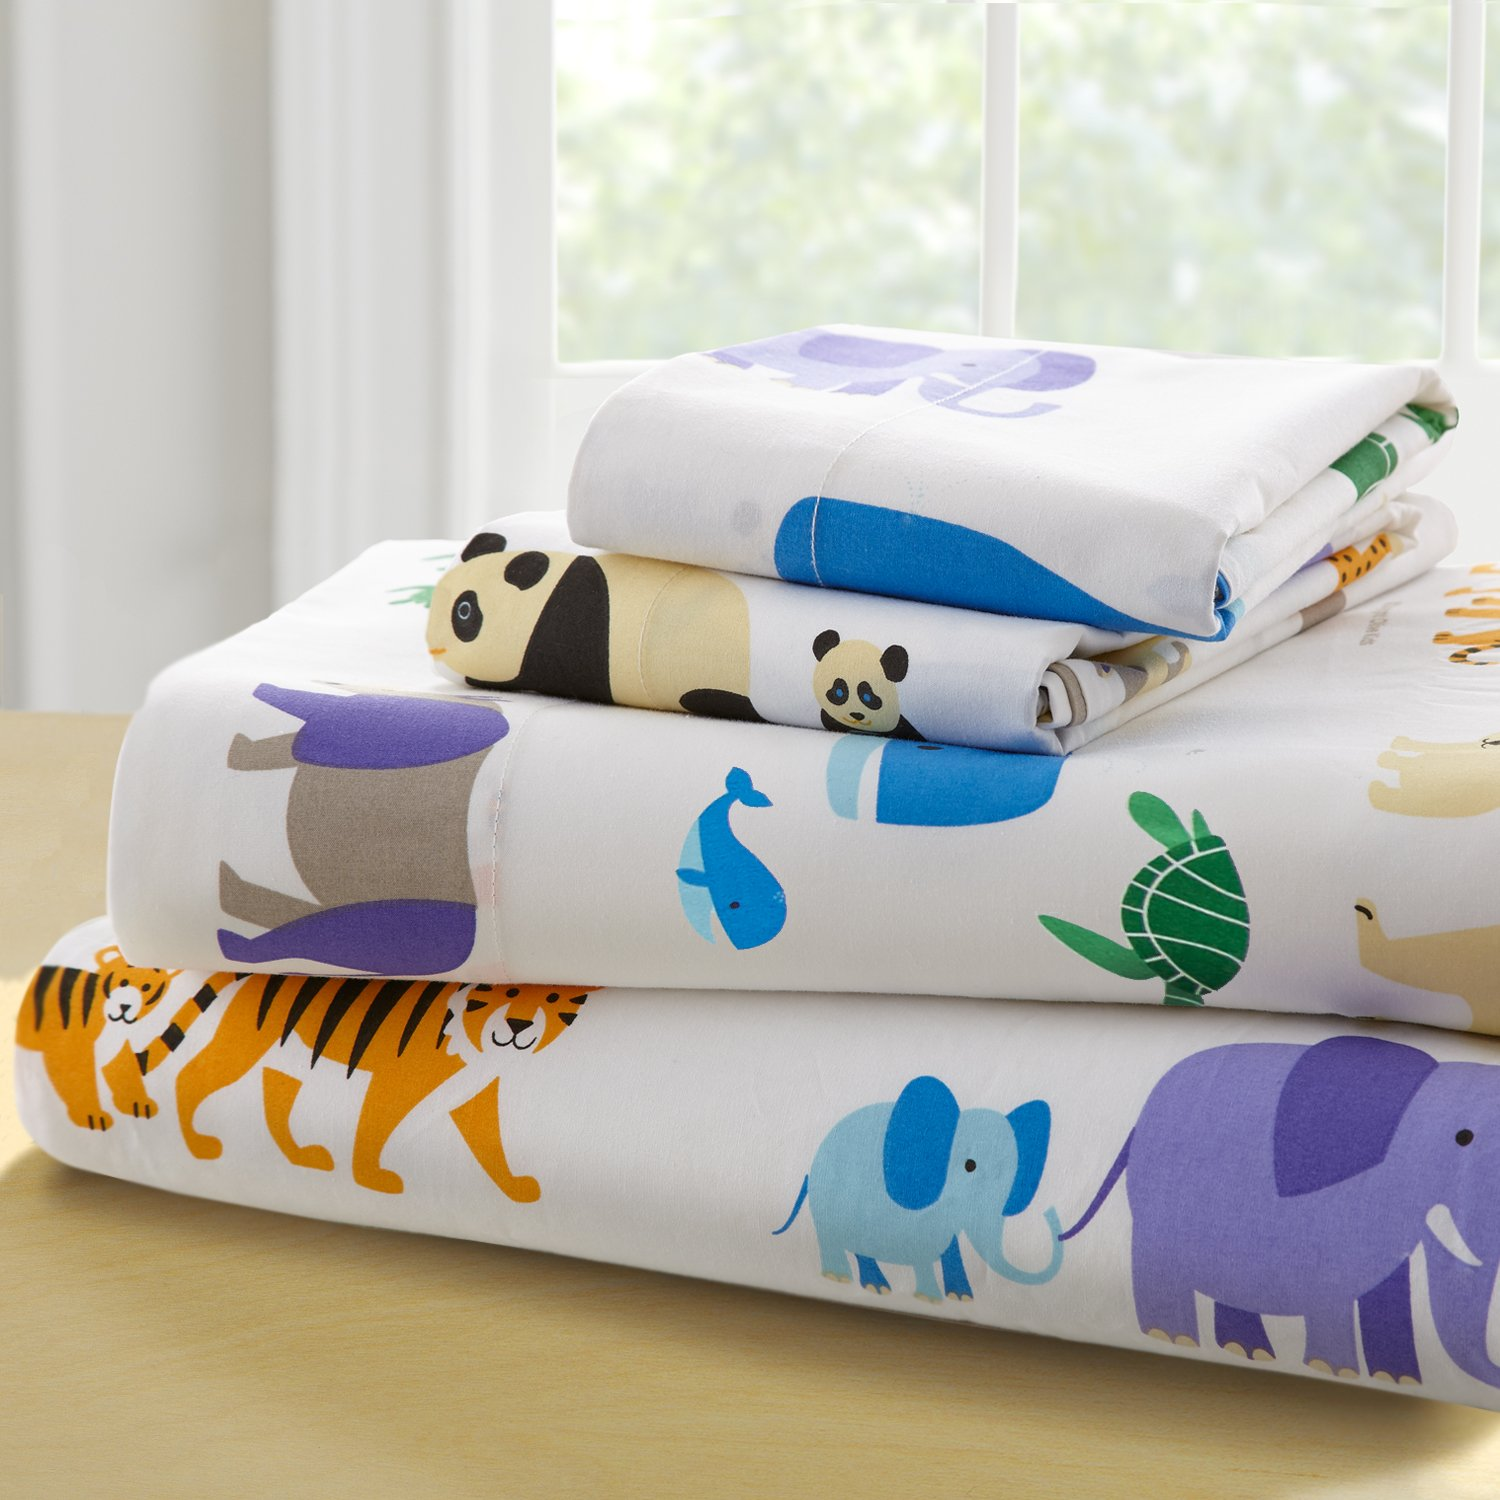 Wildkin Twin Sheet Set, 100% Cotton Twin Sheet Set with Top Sheet, Fitted Sheet, and Pillow Case, Bold Patterns Coordinate with Other Room Décor, Olive Kids Design – Endangered Animals